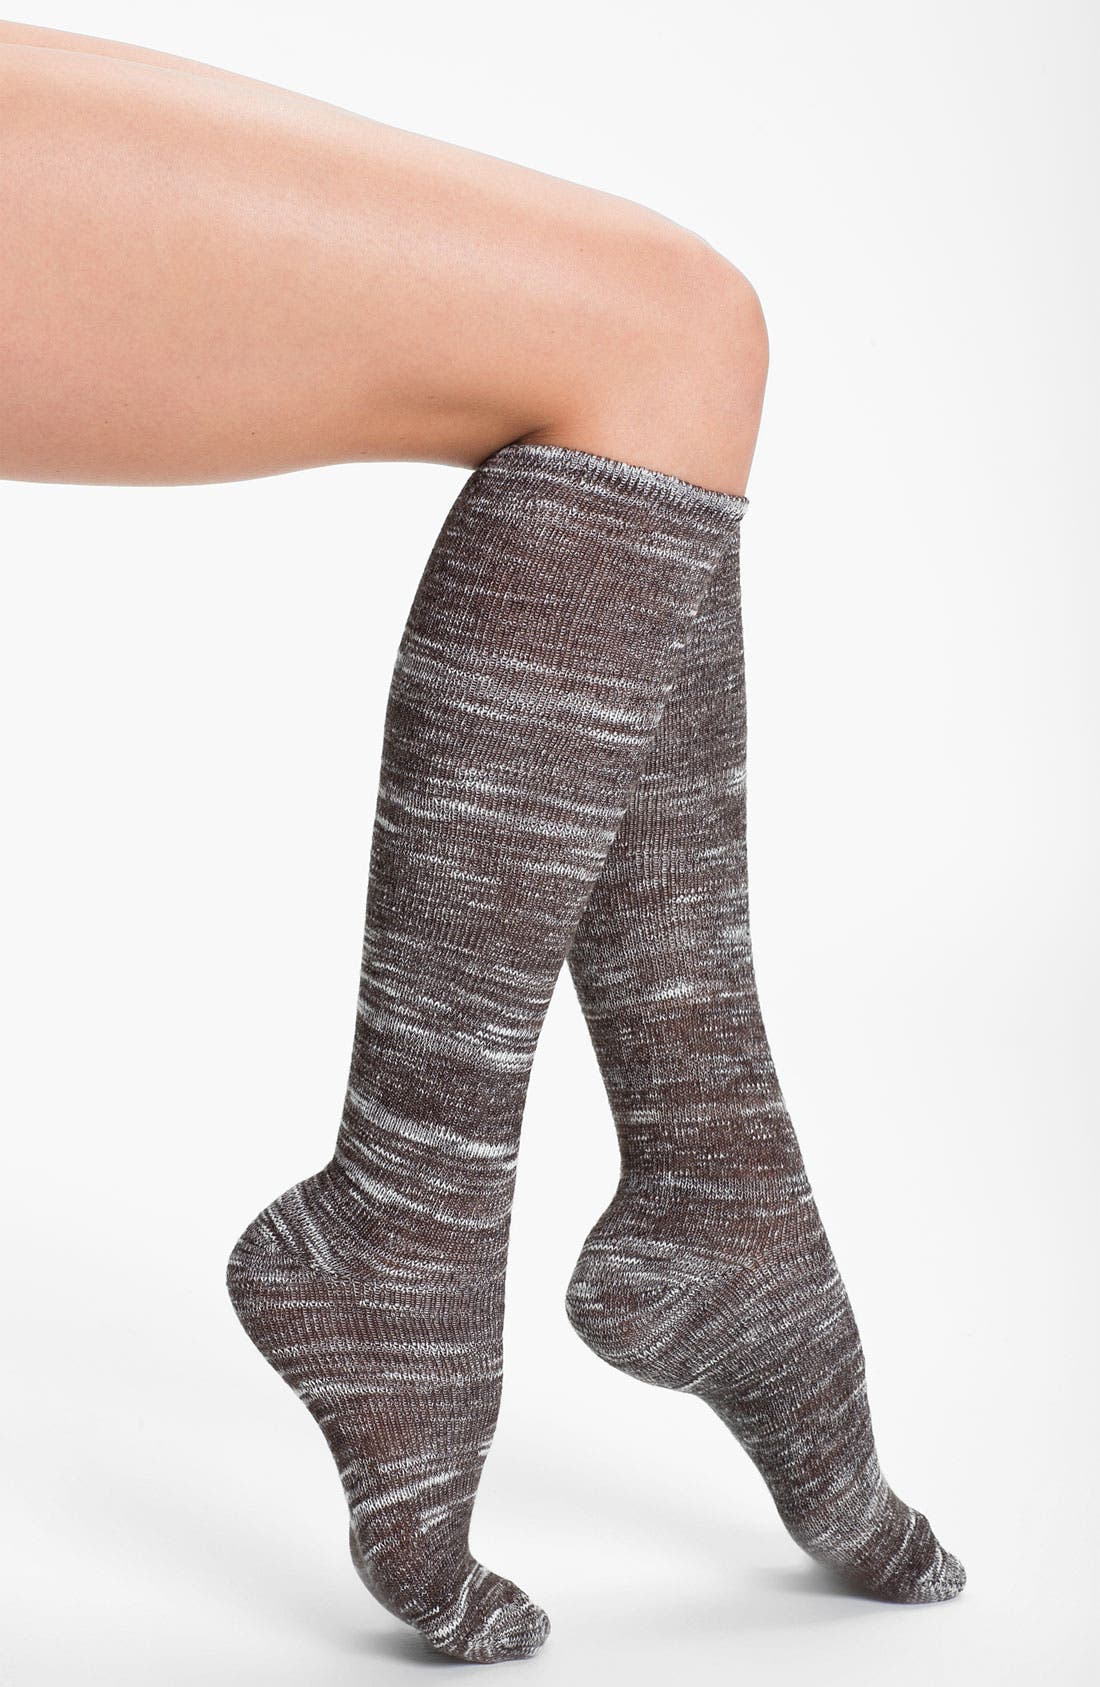 Main Image - Kensie Space Dye Knee High Socks